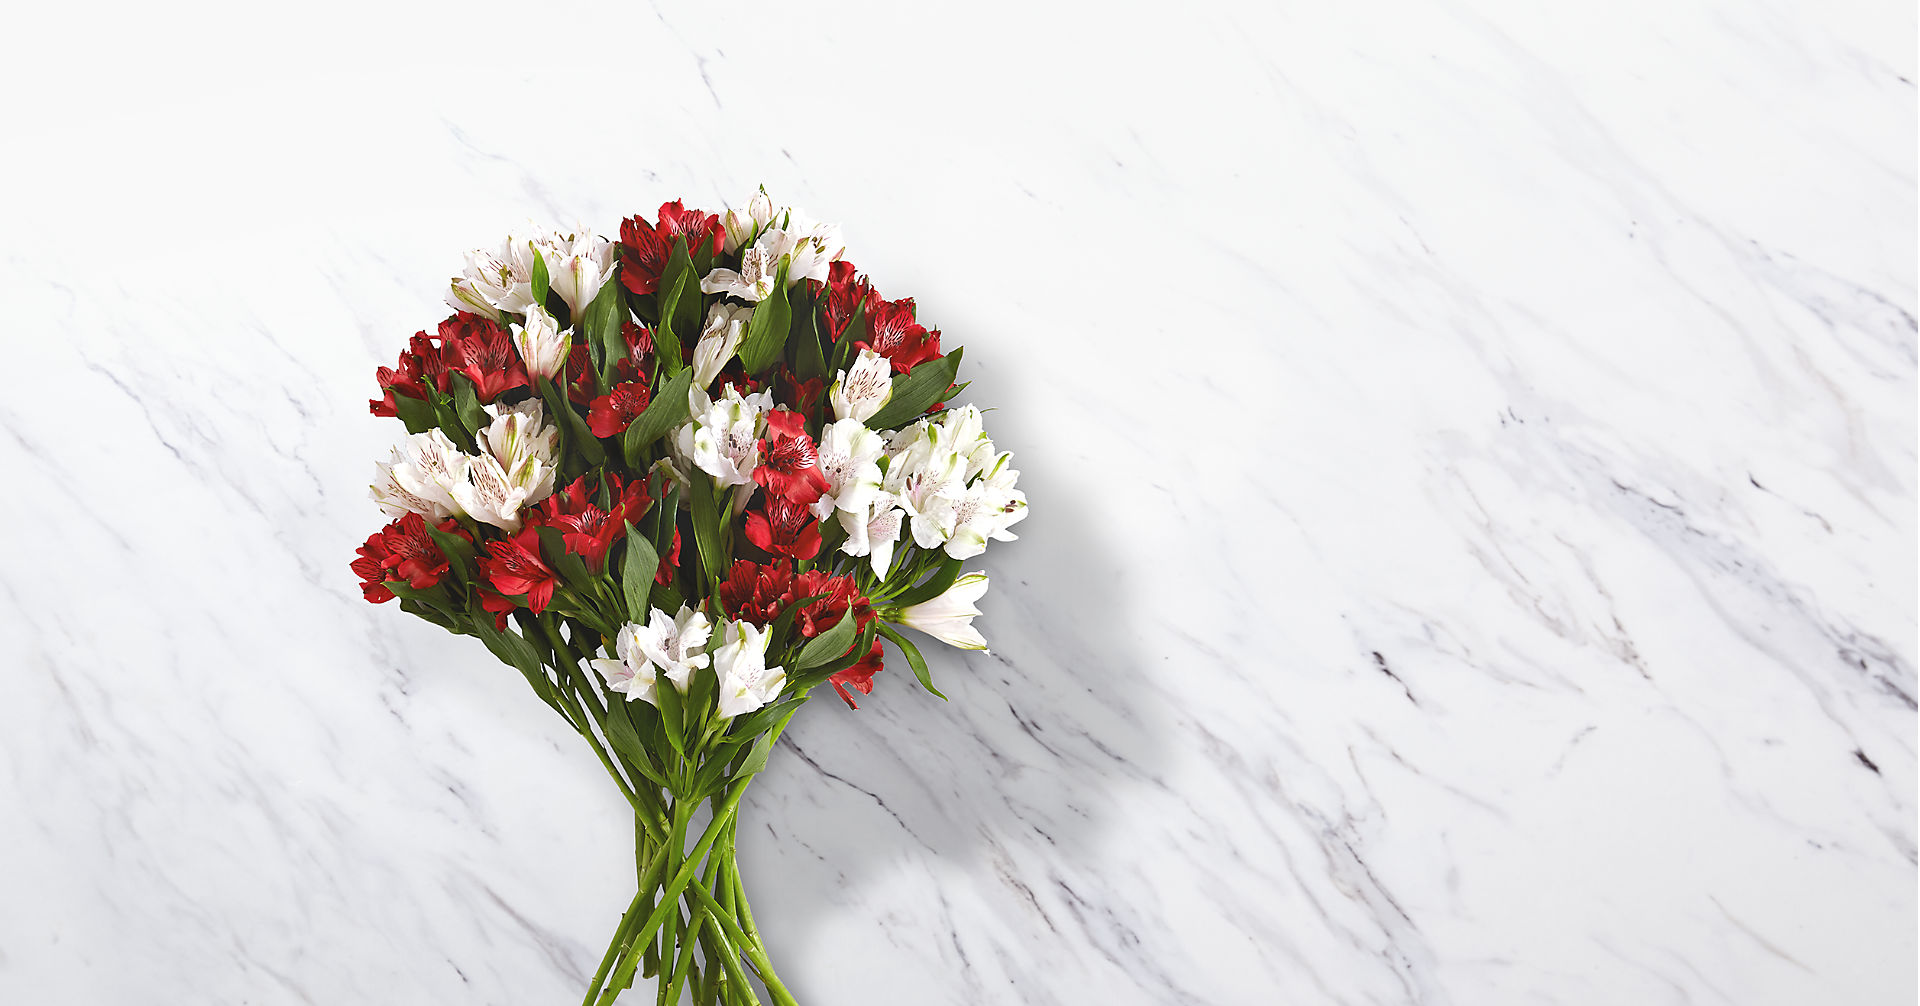 75 Blooms of Candy Cane Peruvian Lilies - Image 1 Of 2